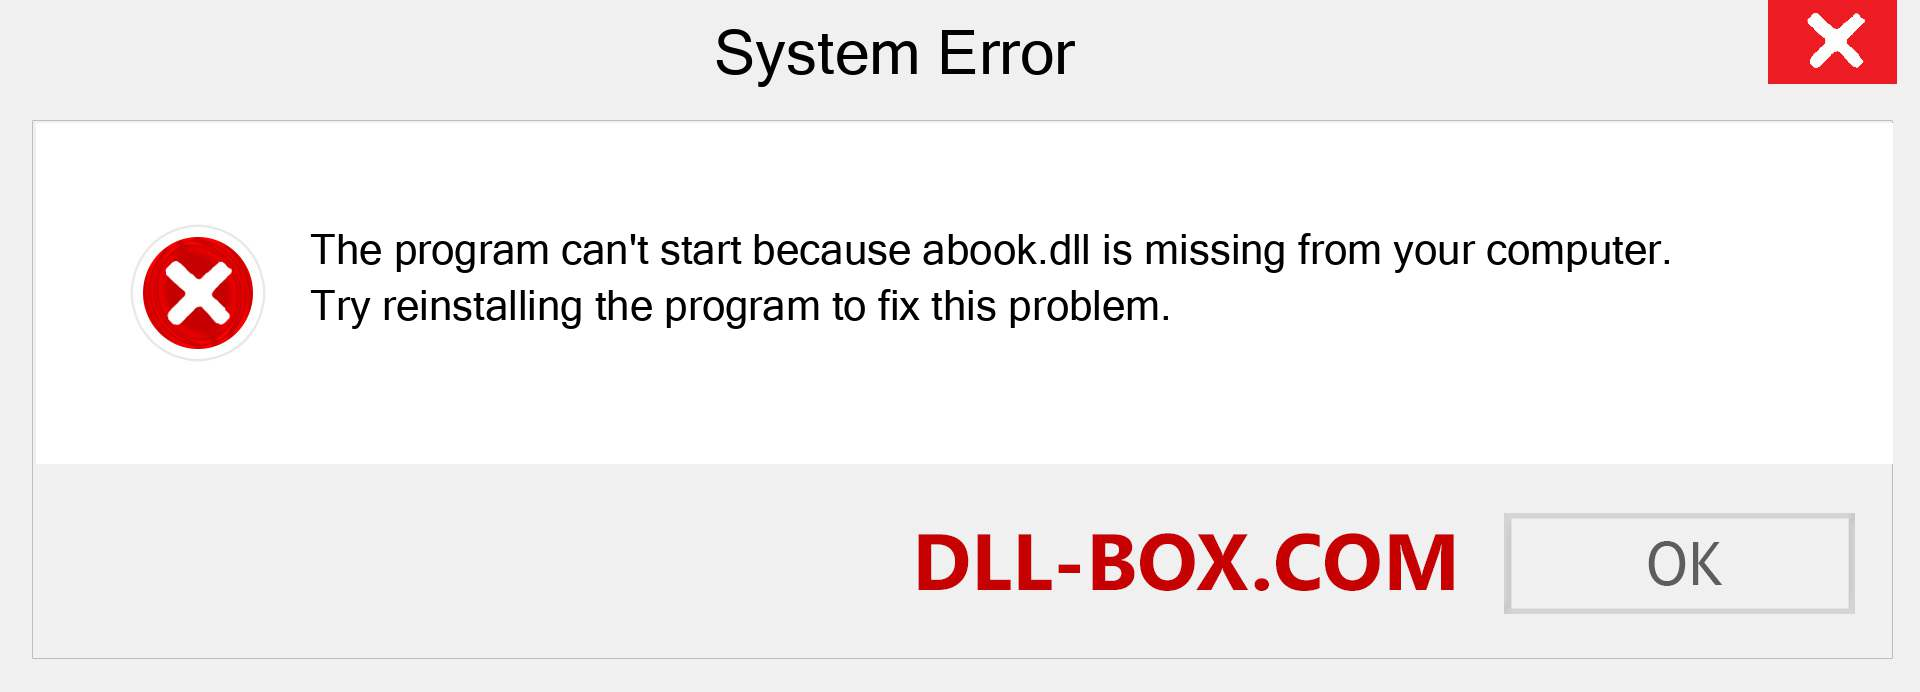 abook.dll file is missing?. Download for Windows 7, 8, 10 - Fix  abook dll Missing Error on Windows, photos, images